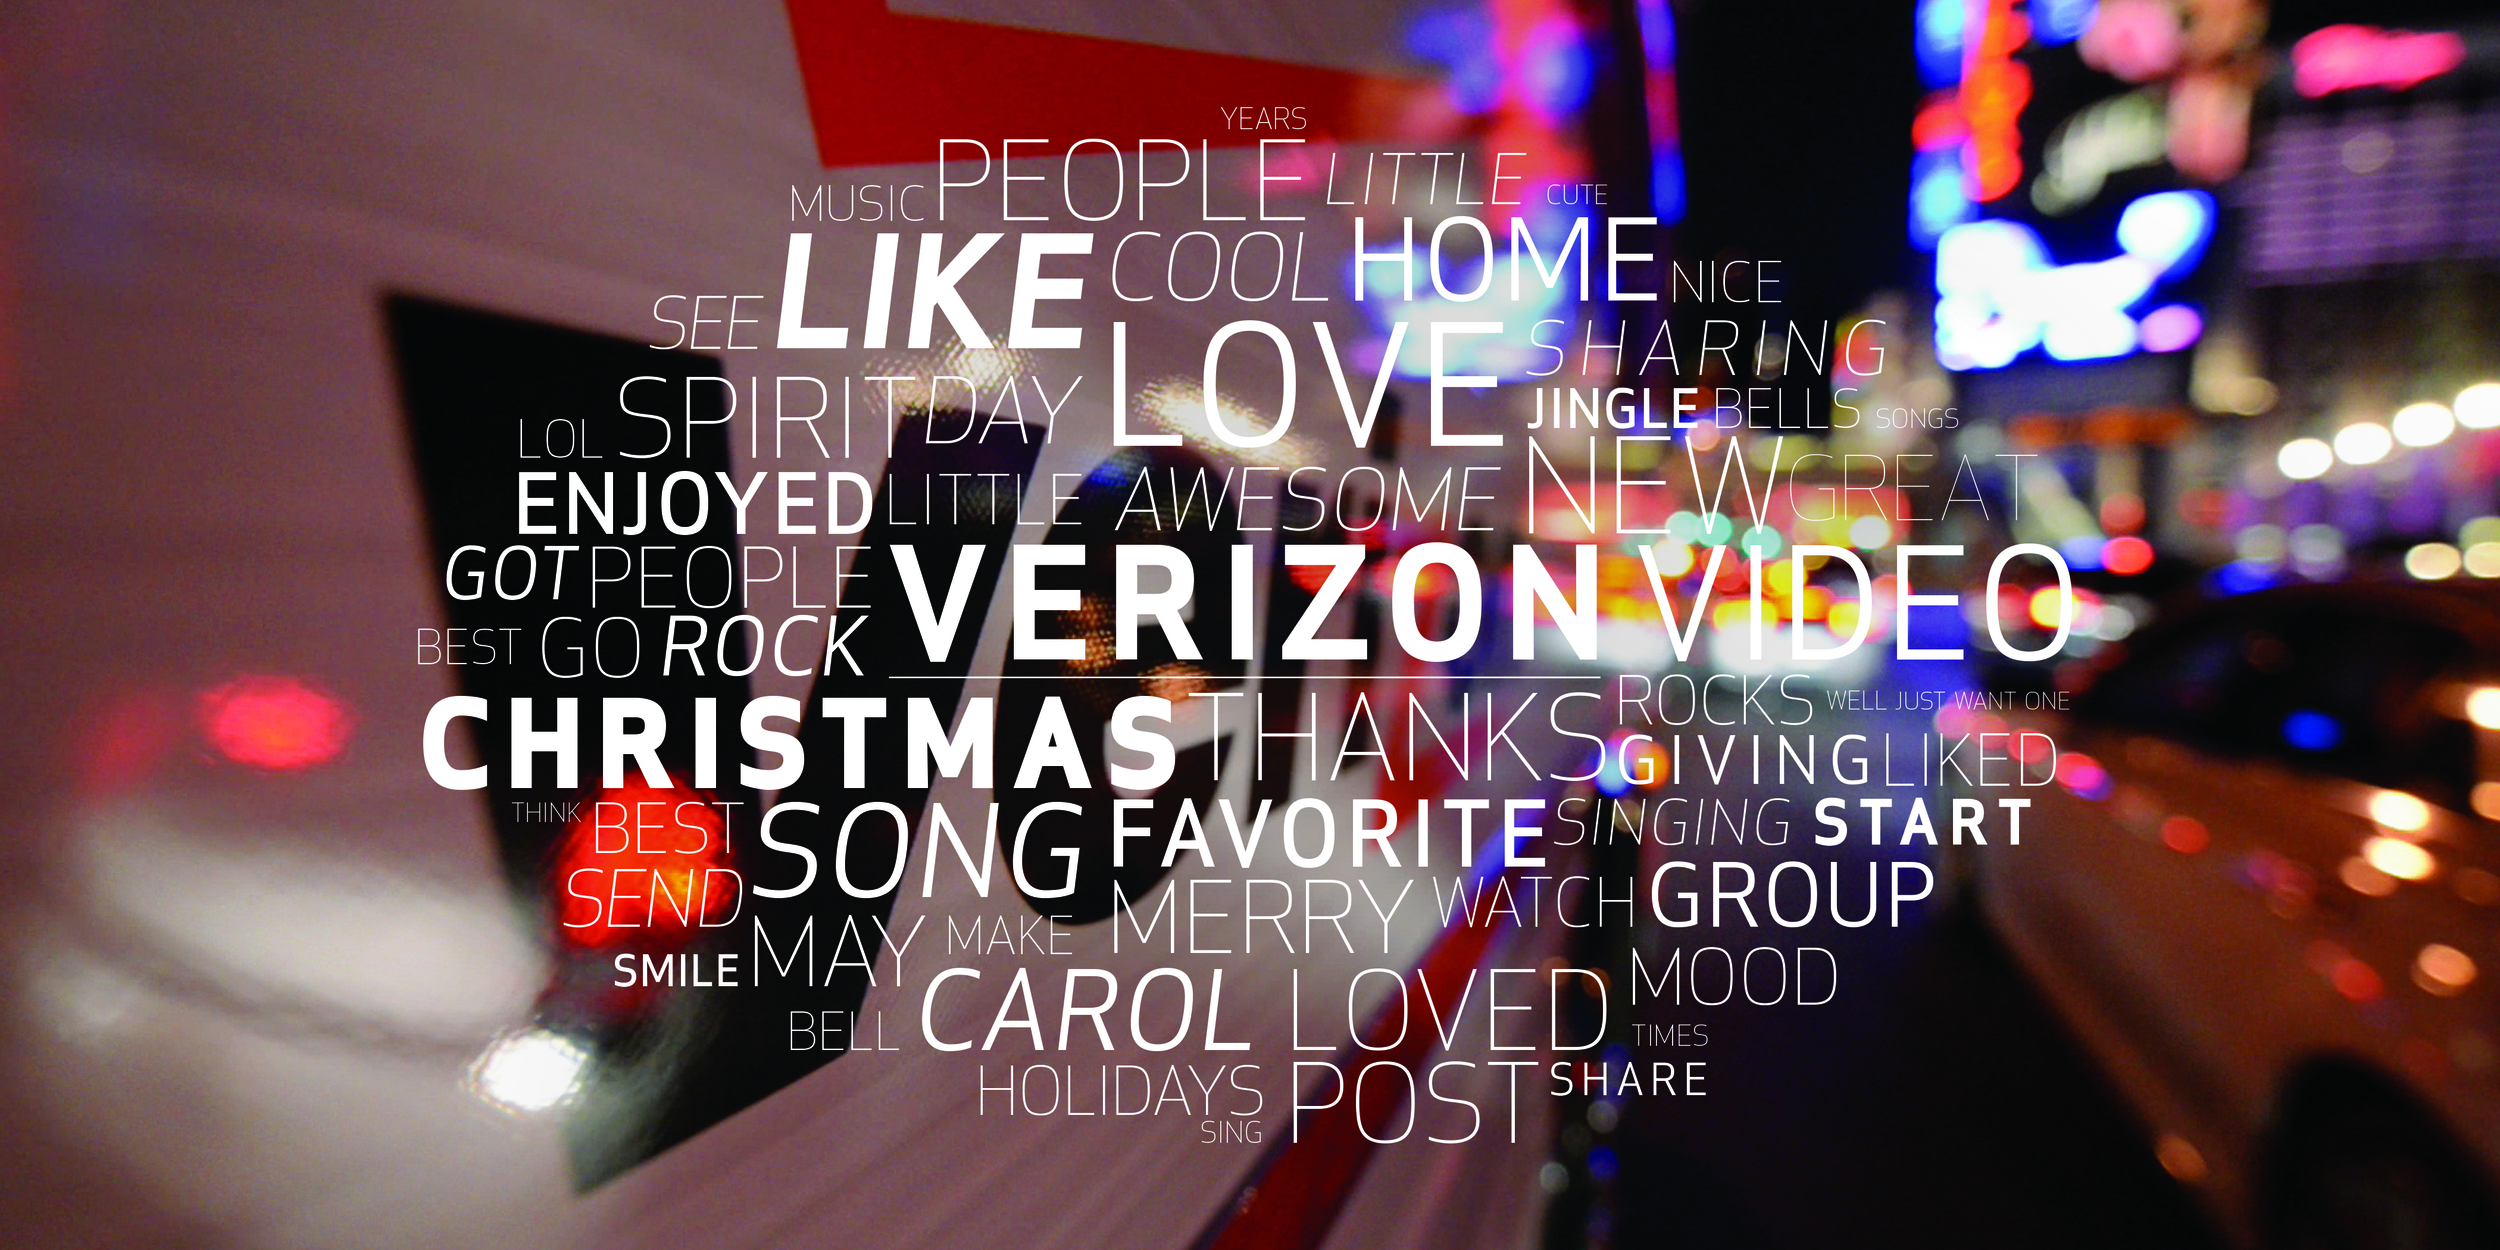 Word cloud of the top used words from the comment sections collected across all social channels